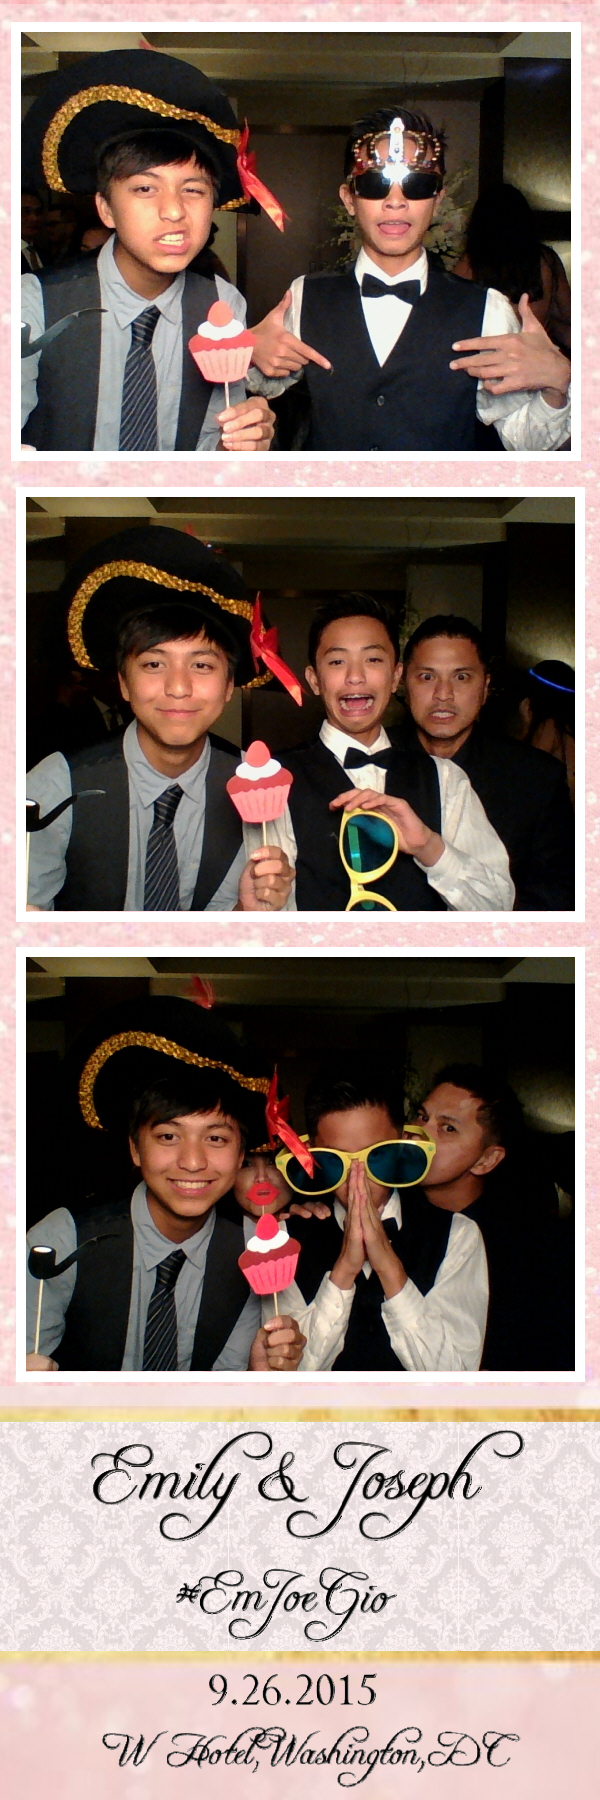 Guest House Events Photo Booth E&J (15).jpg